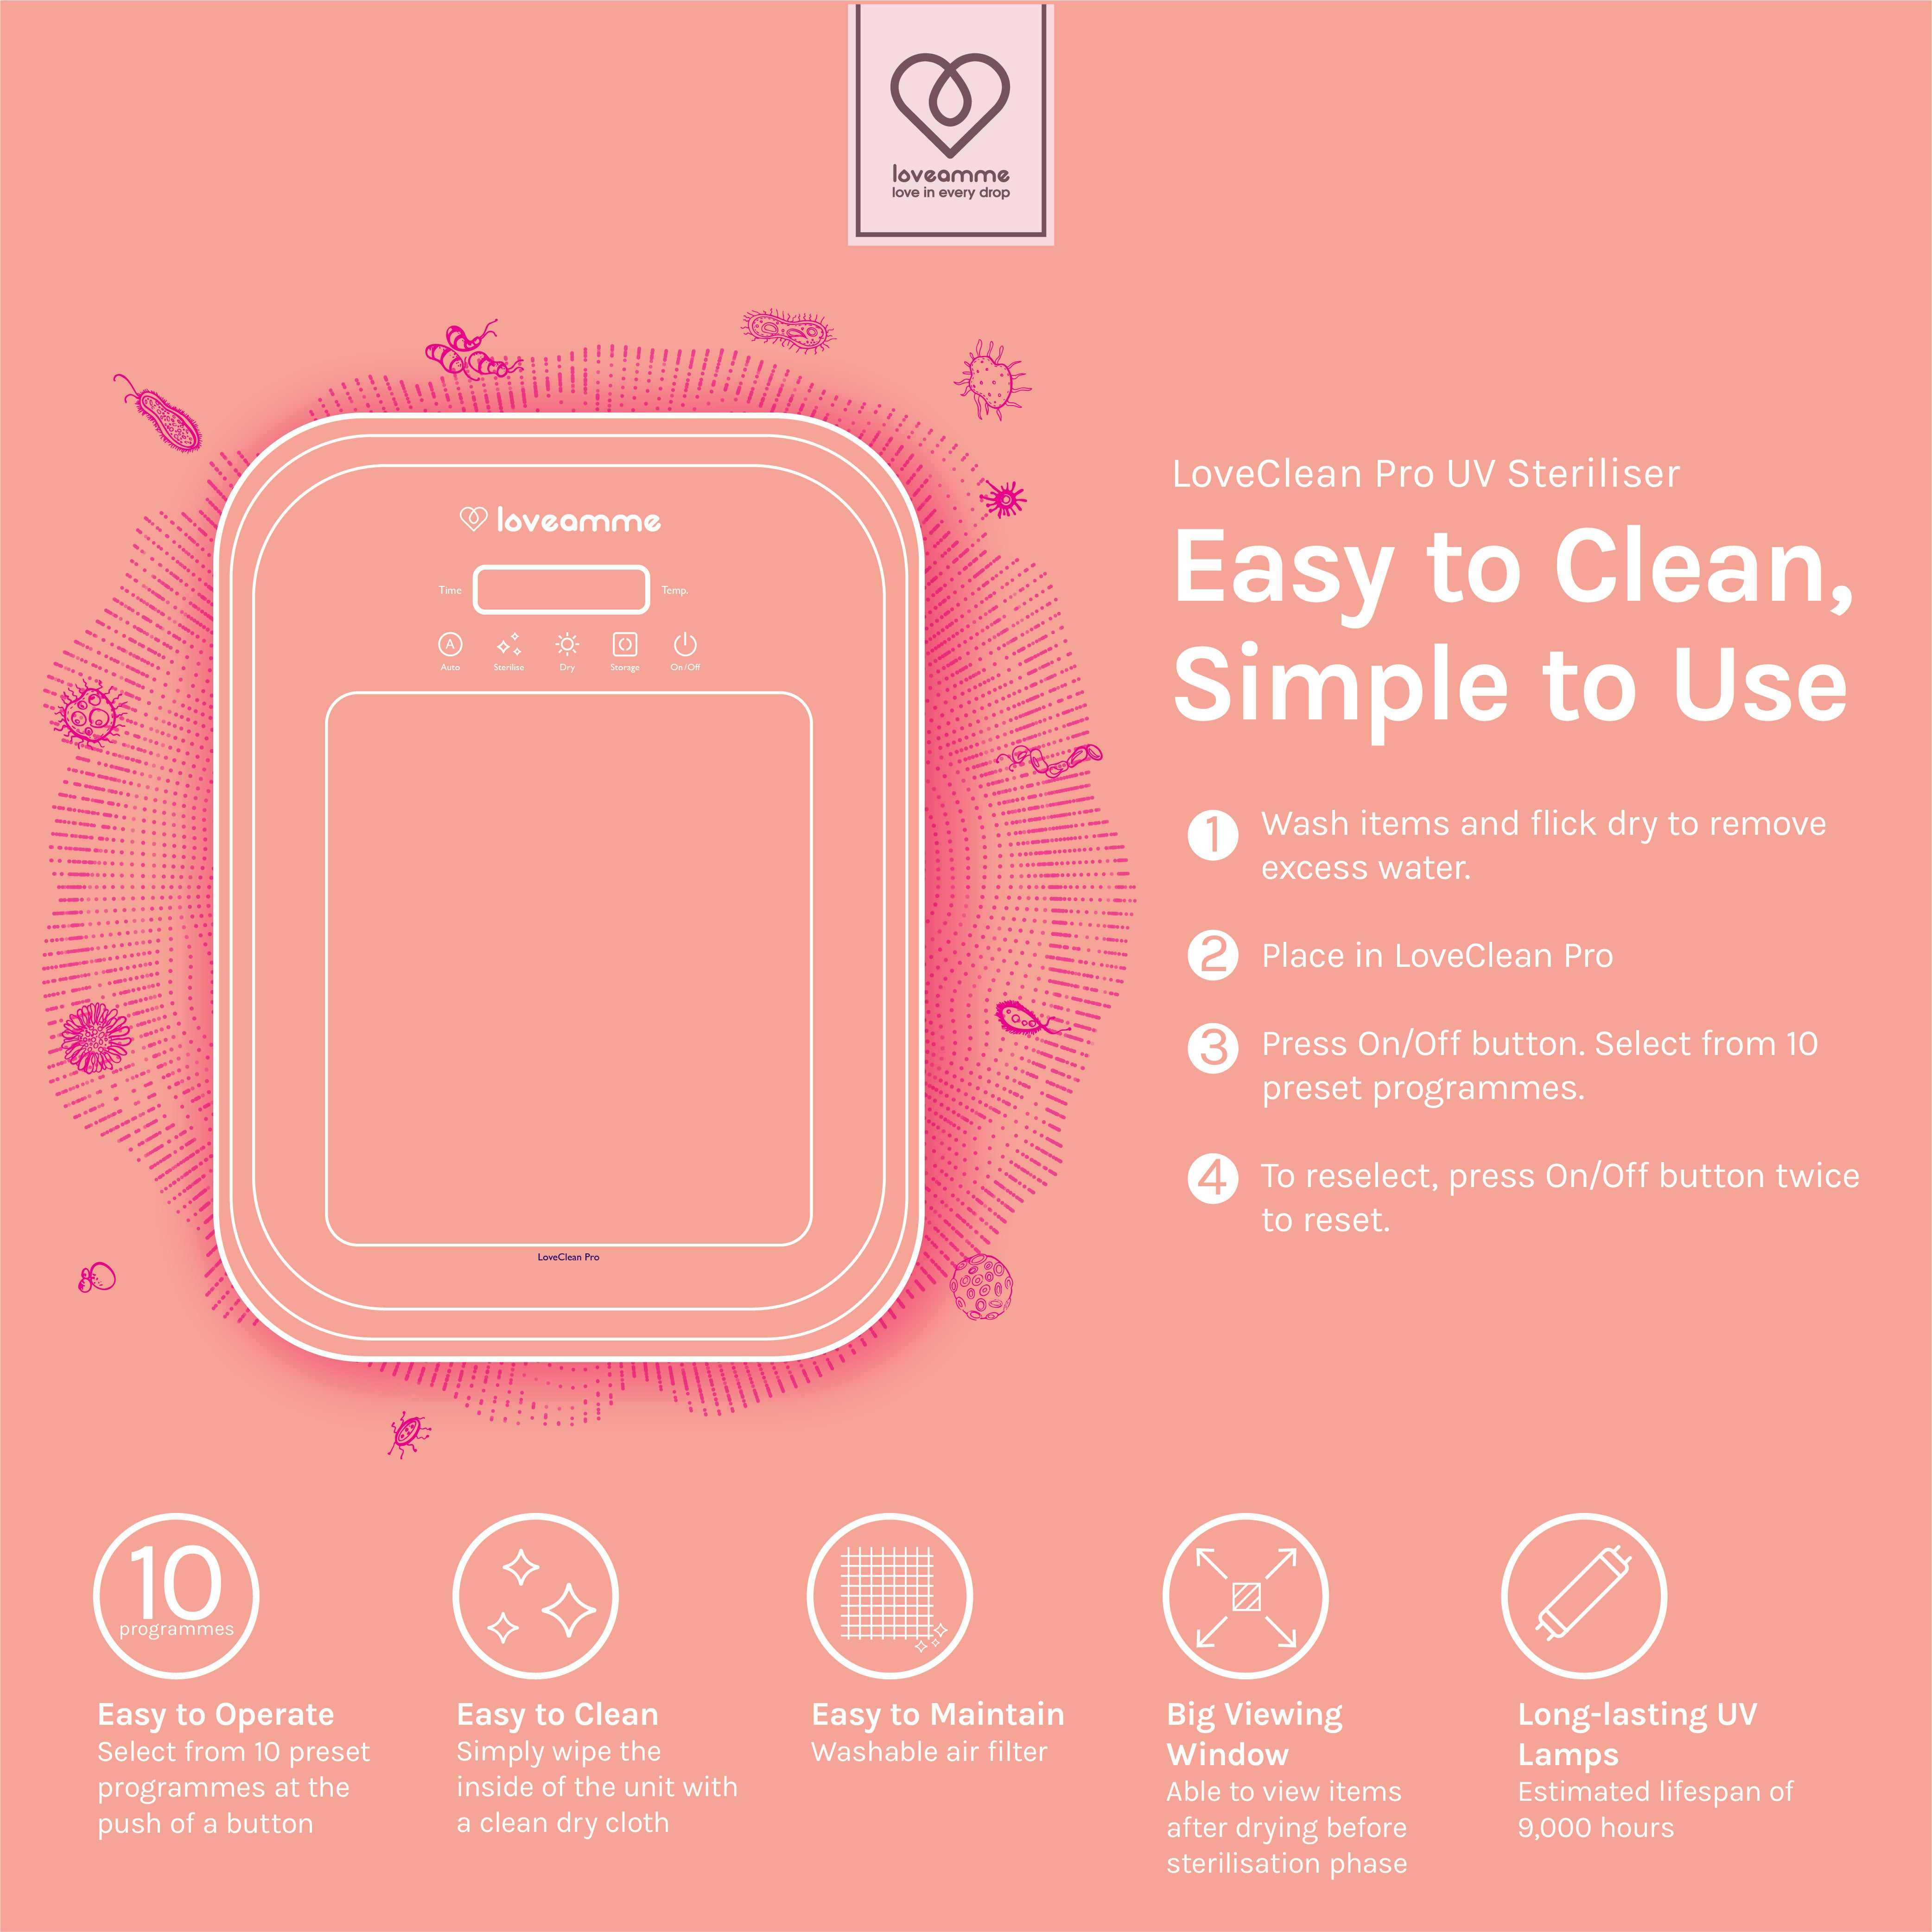 Loveamme LoveClean Pro UV Steriliser is simple to use and easy to clean